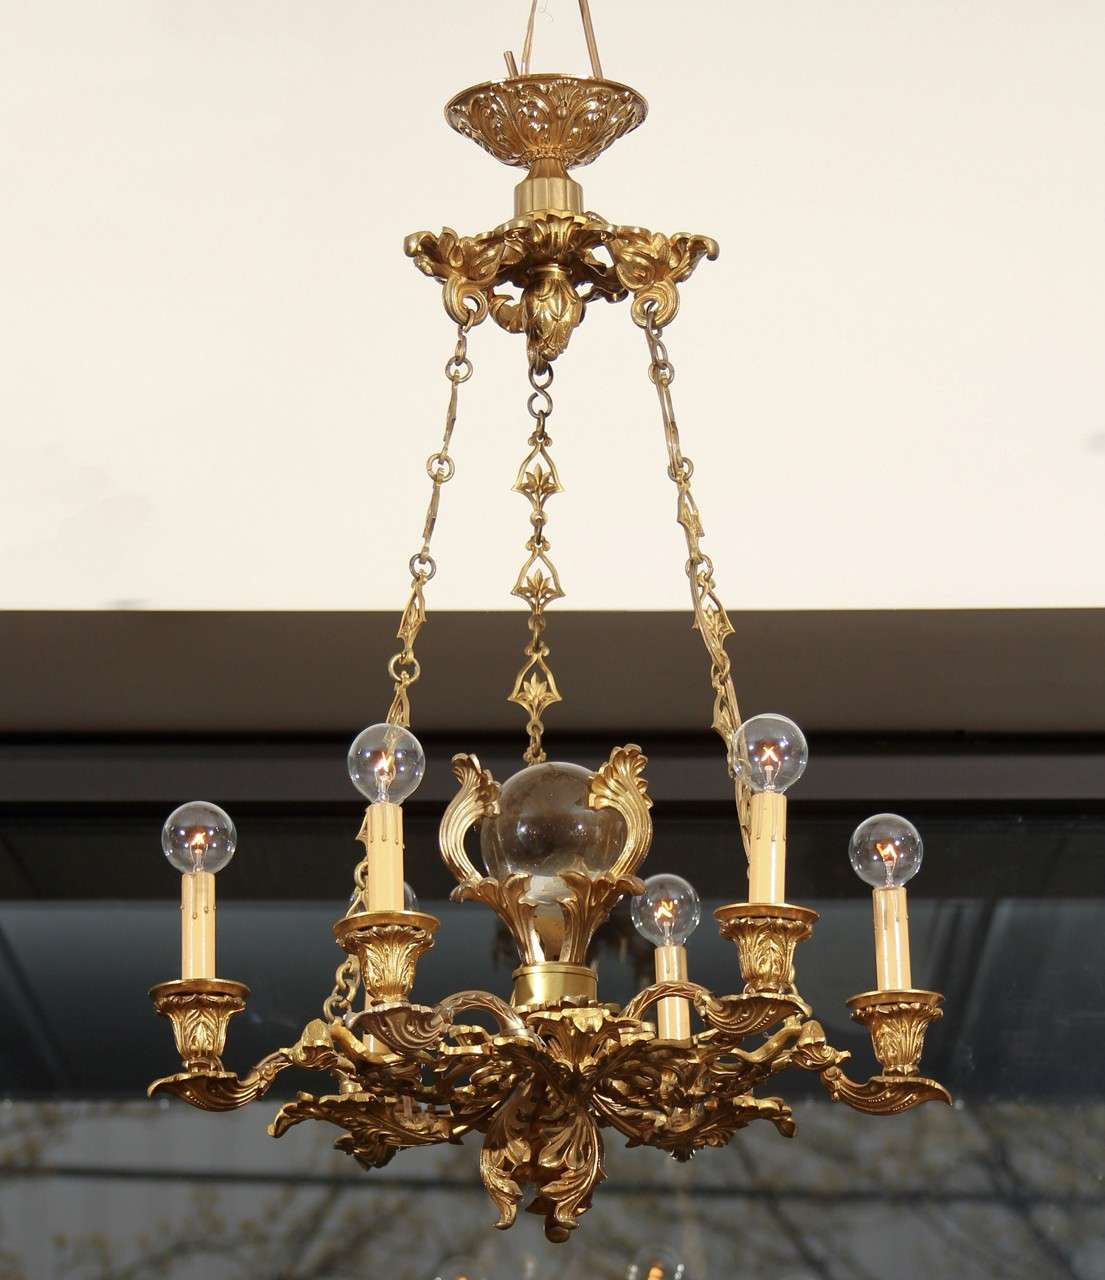 Beautifully detailed six-arm chandelier highlighted with large crystal orb.